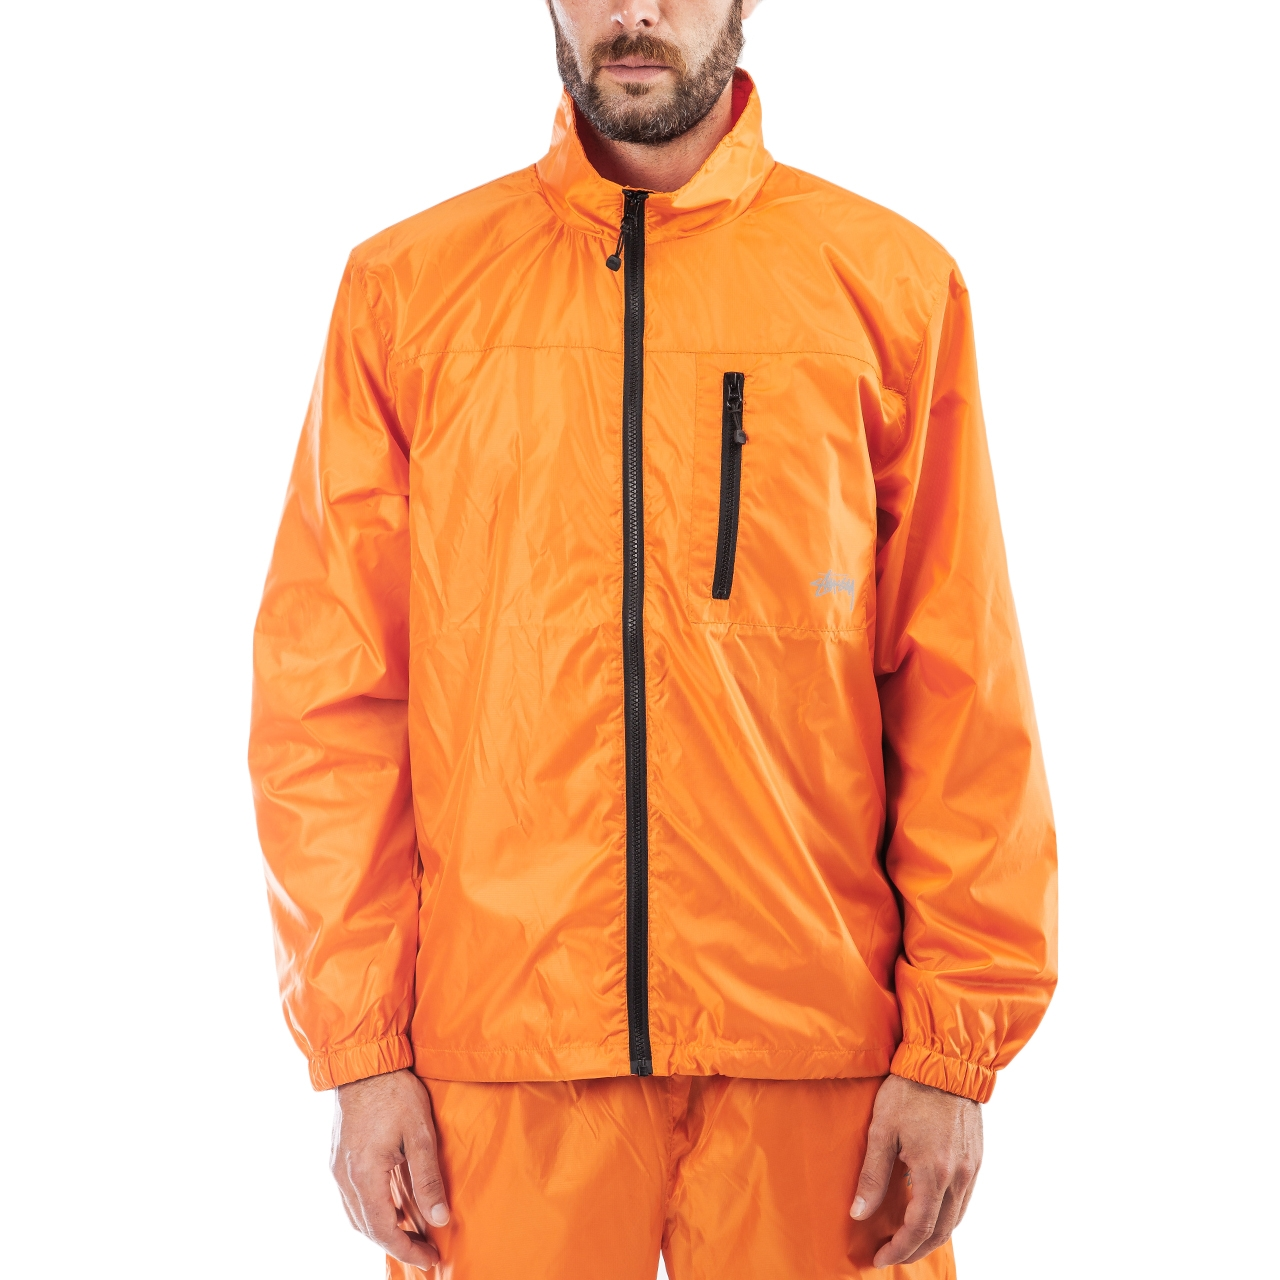 Stüssy Micro Rip Jacket (Orange)